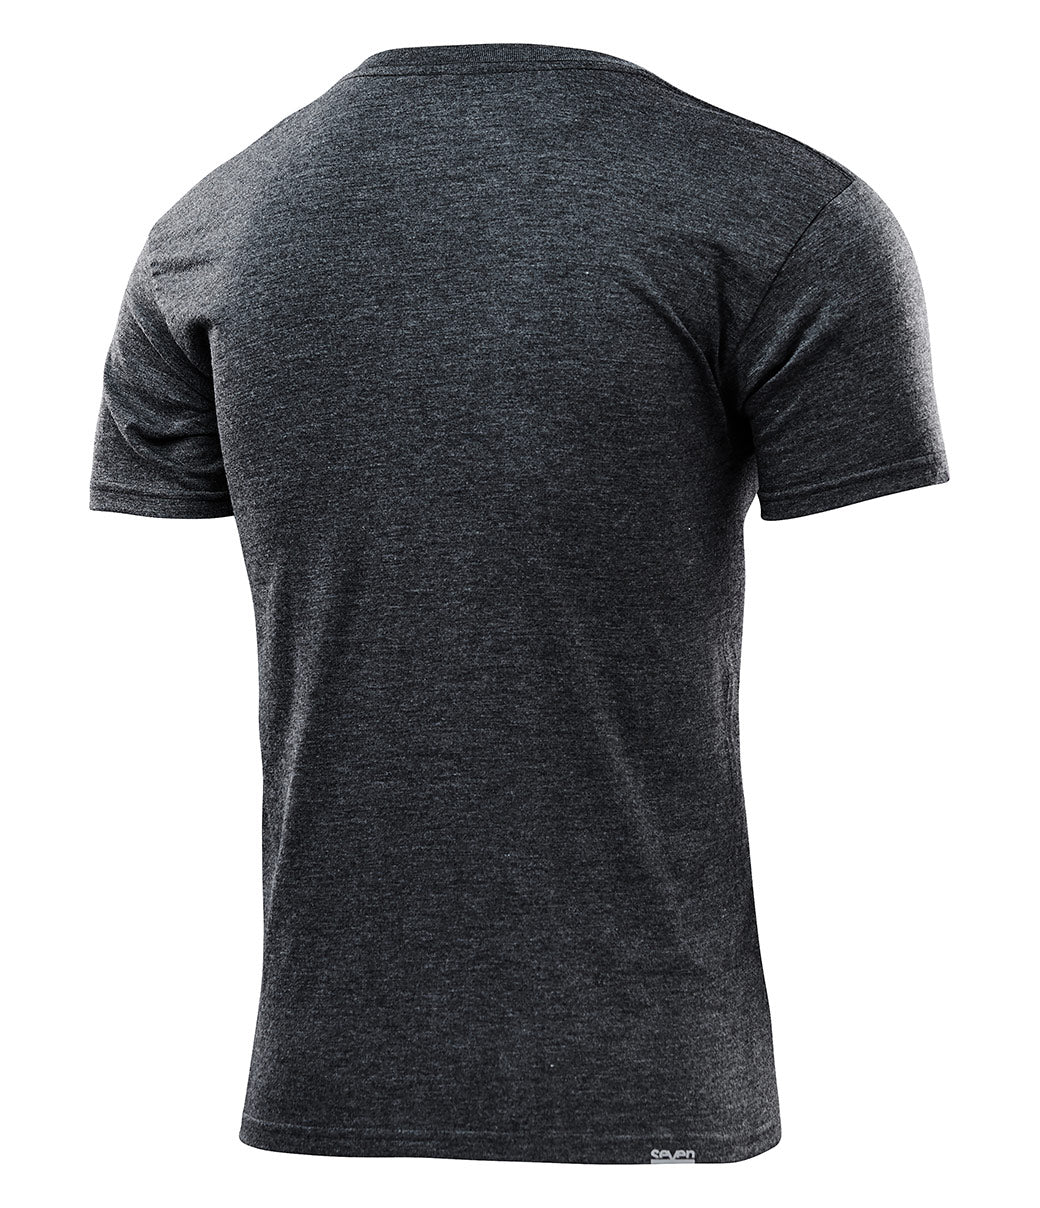 Send-It Tee - Grey Heather